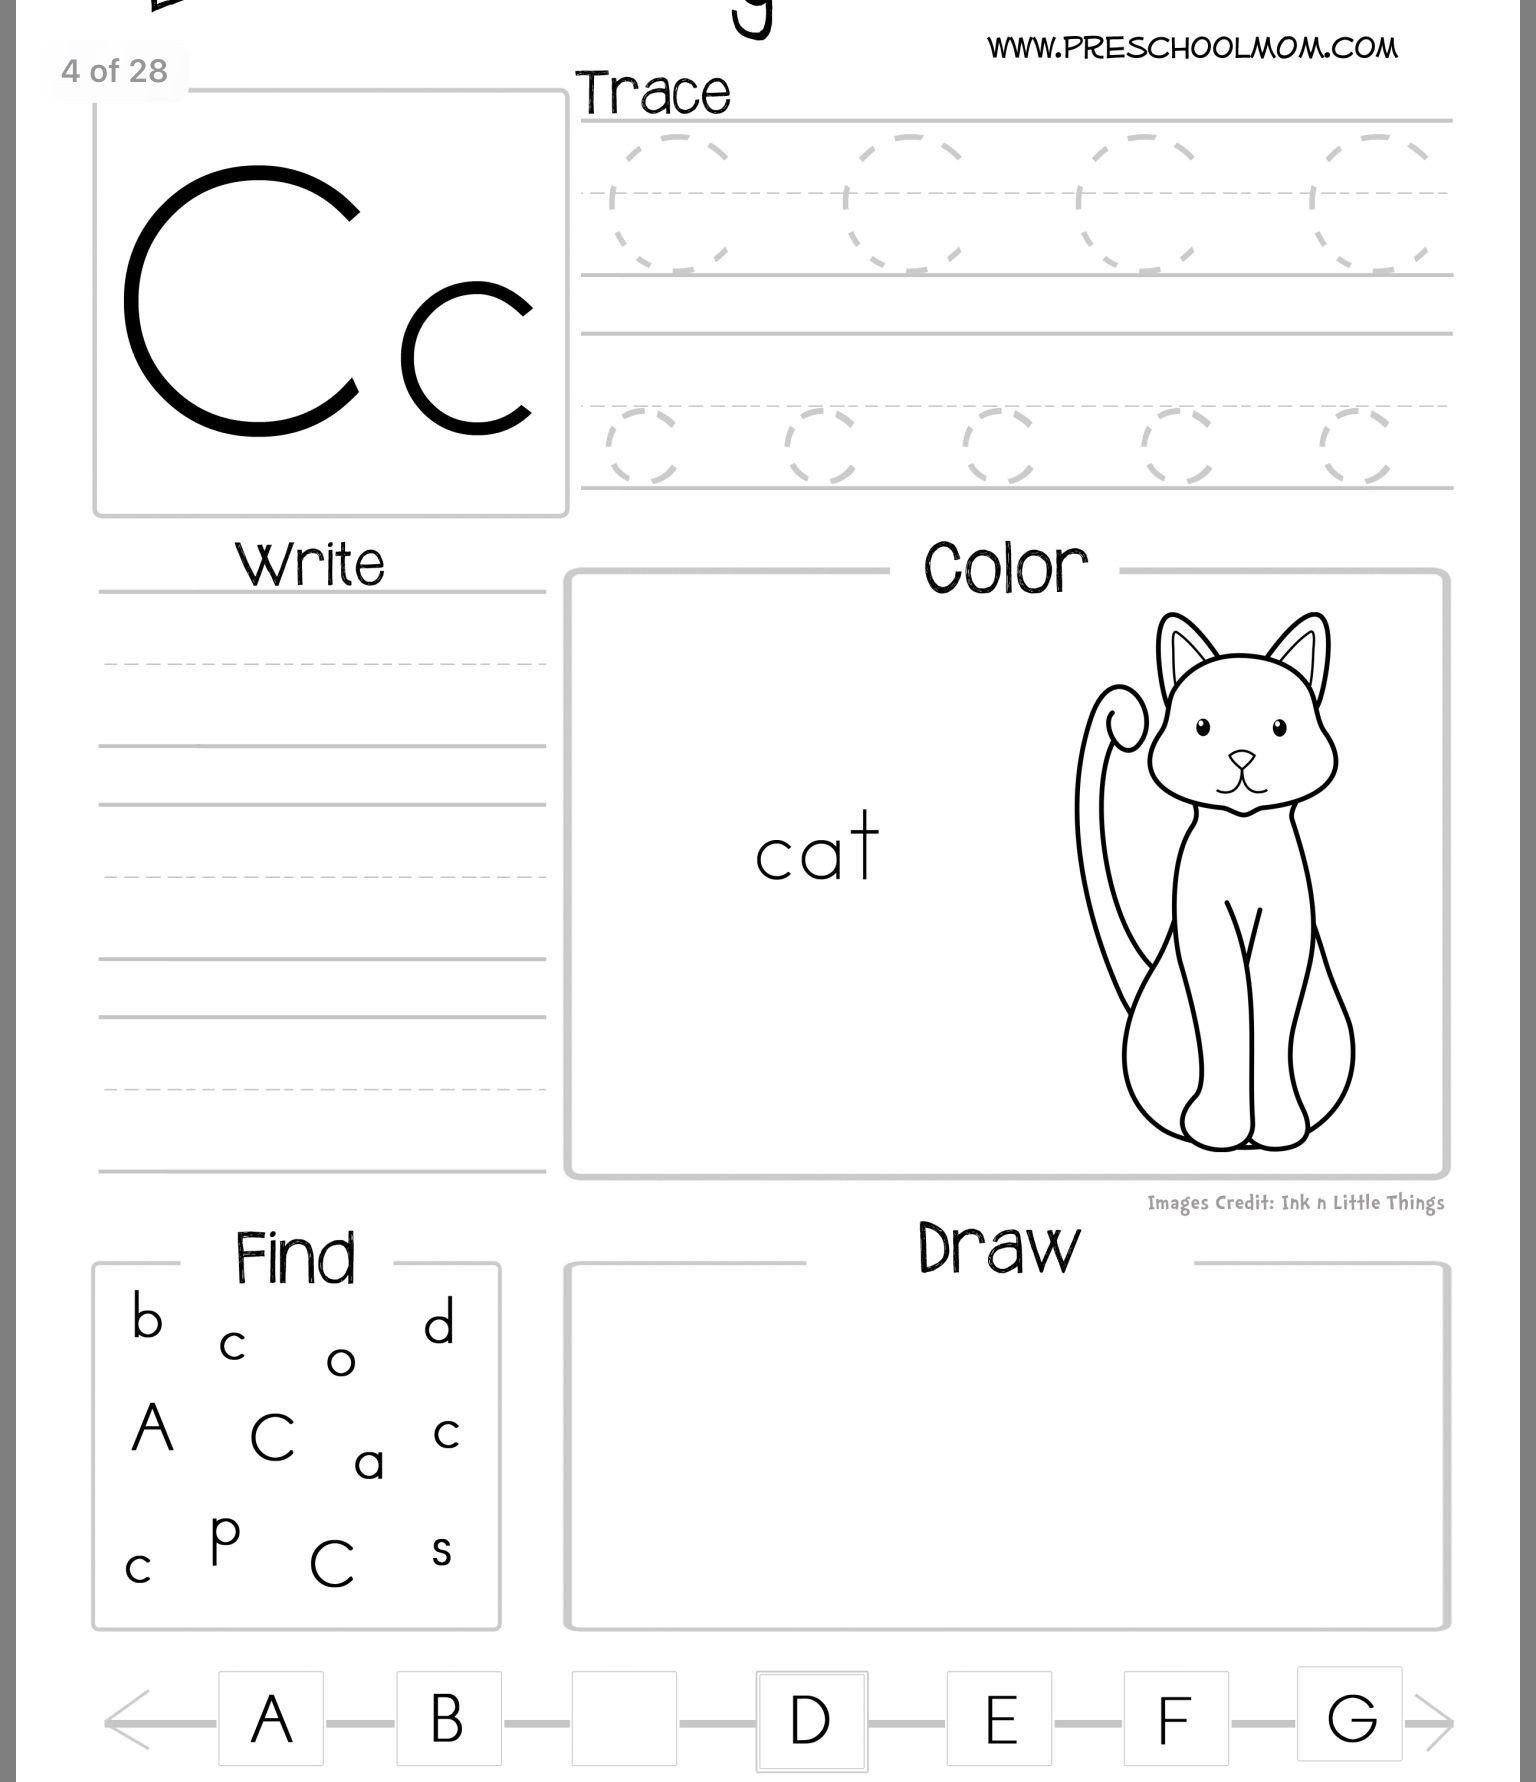 Mammal Worksheets First Grade Worksheets Classroom Mathematics Grade Caps 5th Cbse Maths